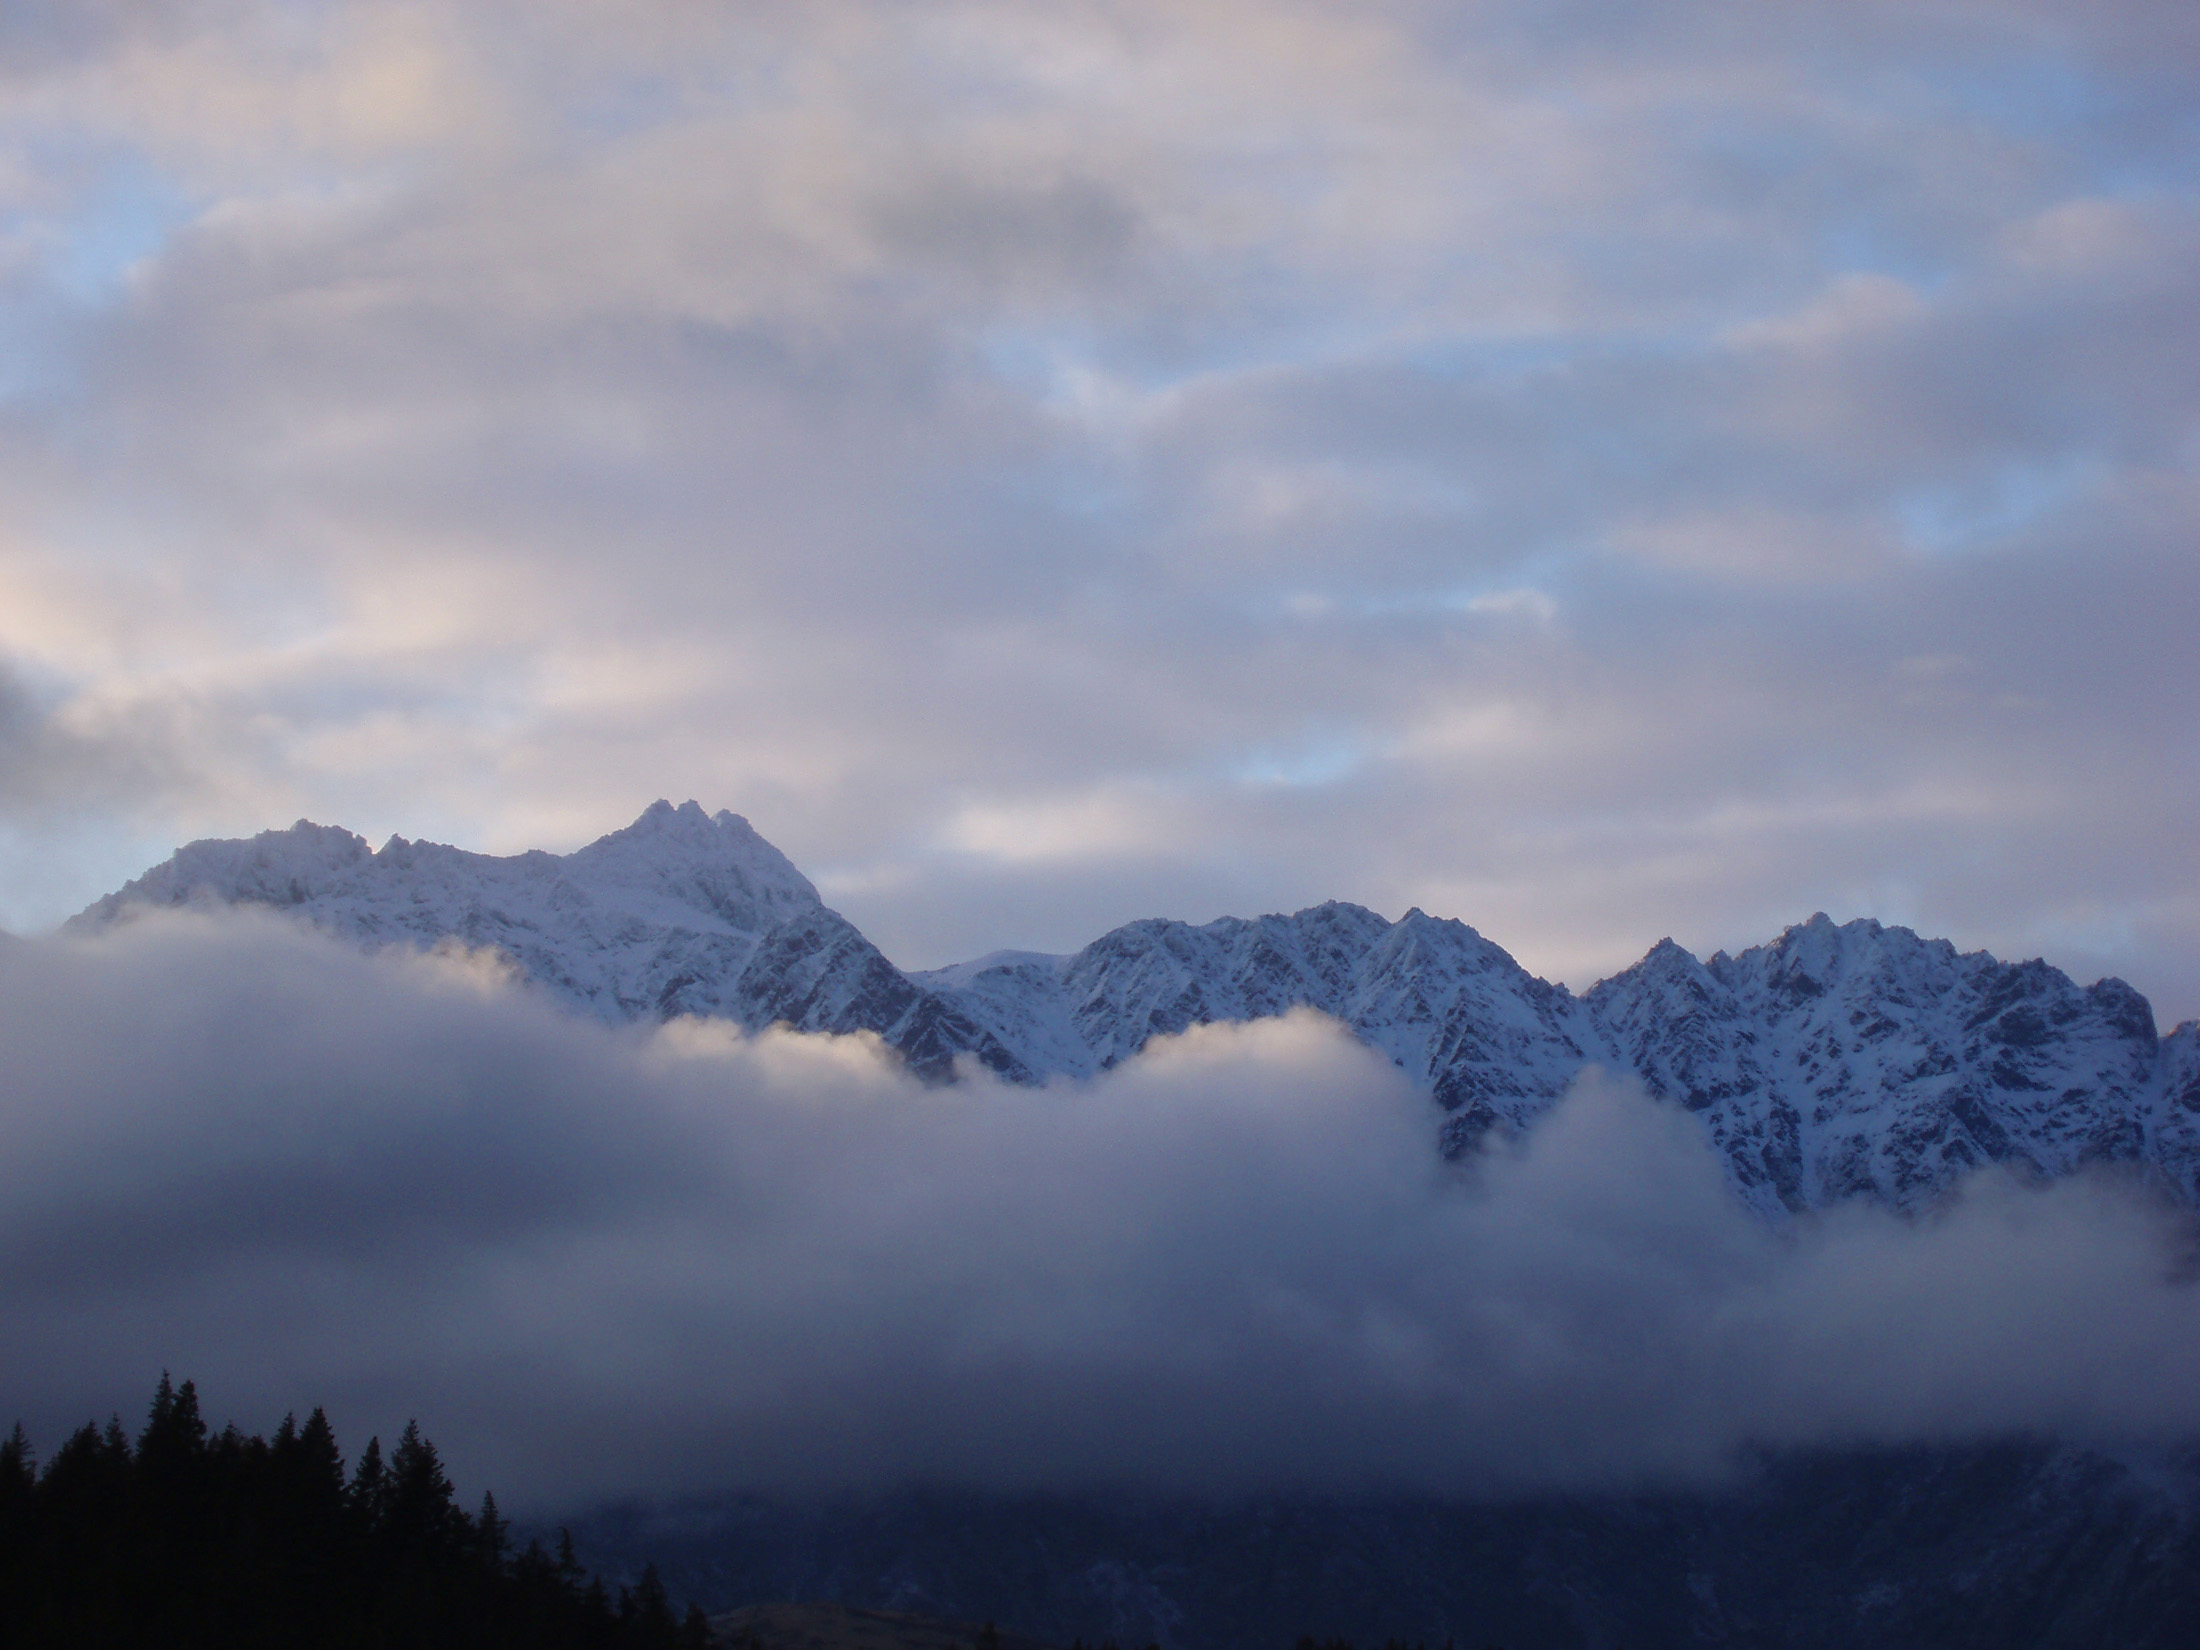 clouded montain range, the remarkables as seen from queenstown, newzealand in winter